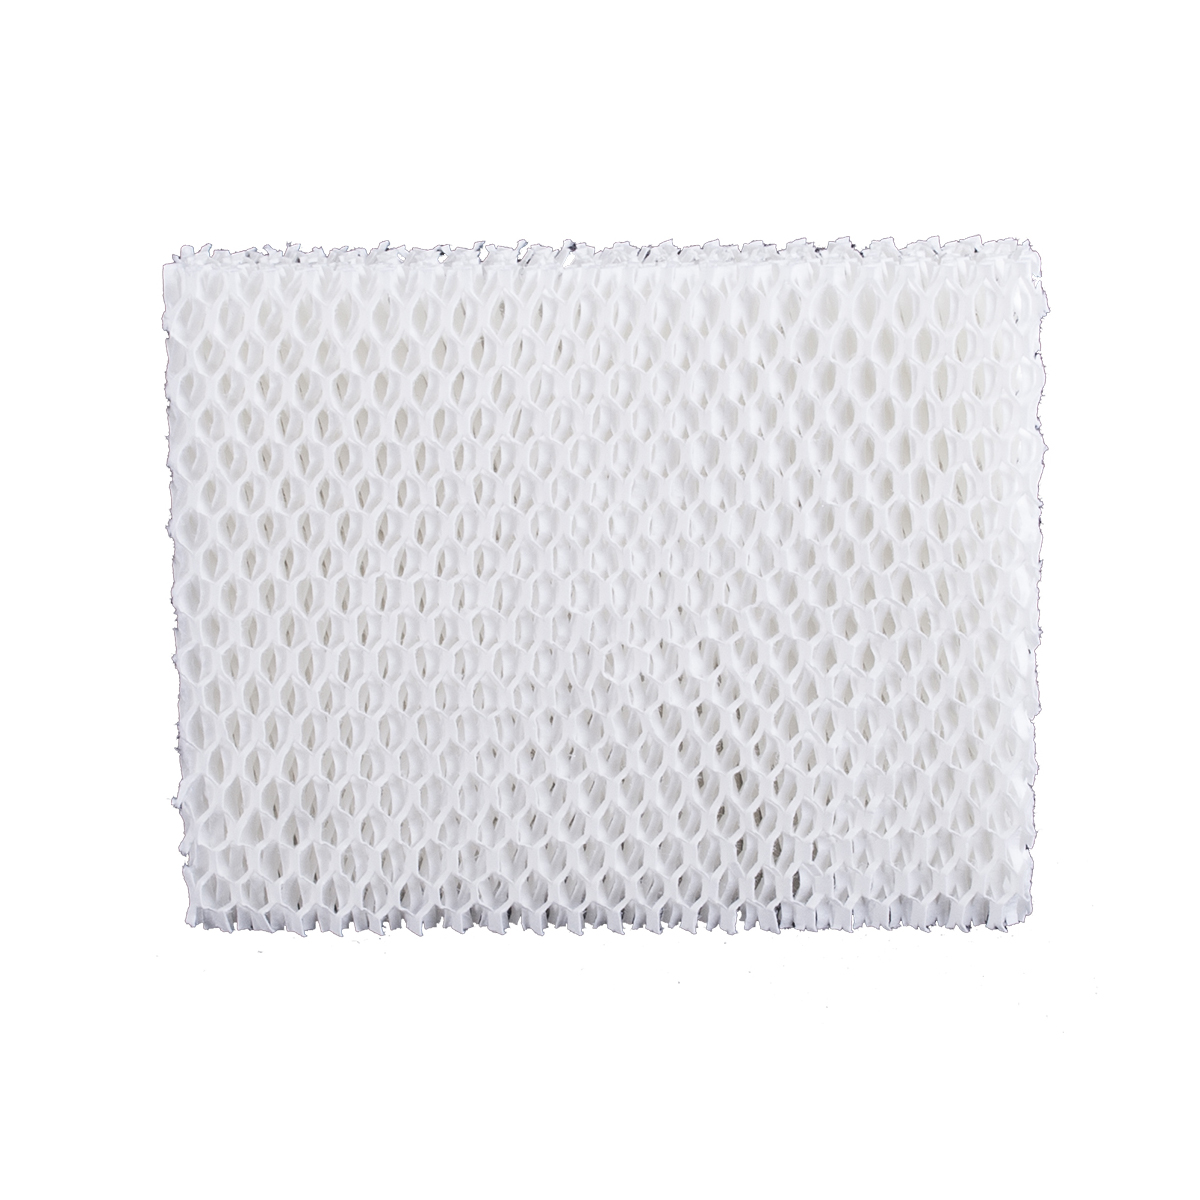 VMD1-0002 Vornado comparable wick filter by Replacement Brand RB-VMD1-0002